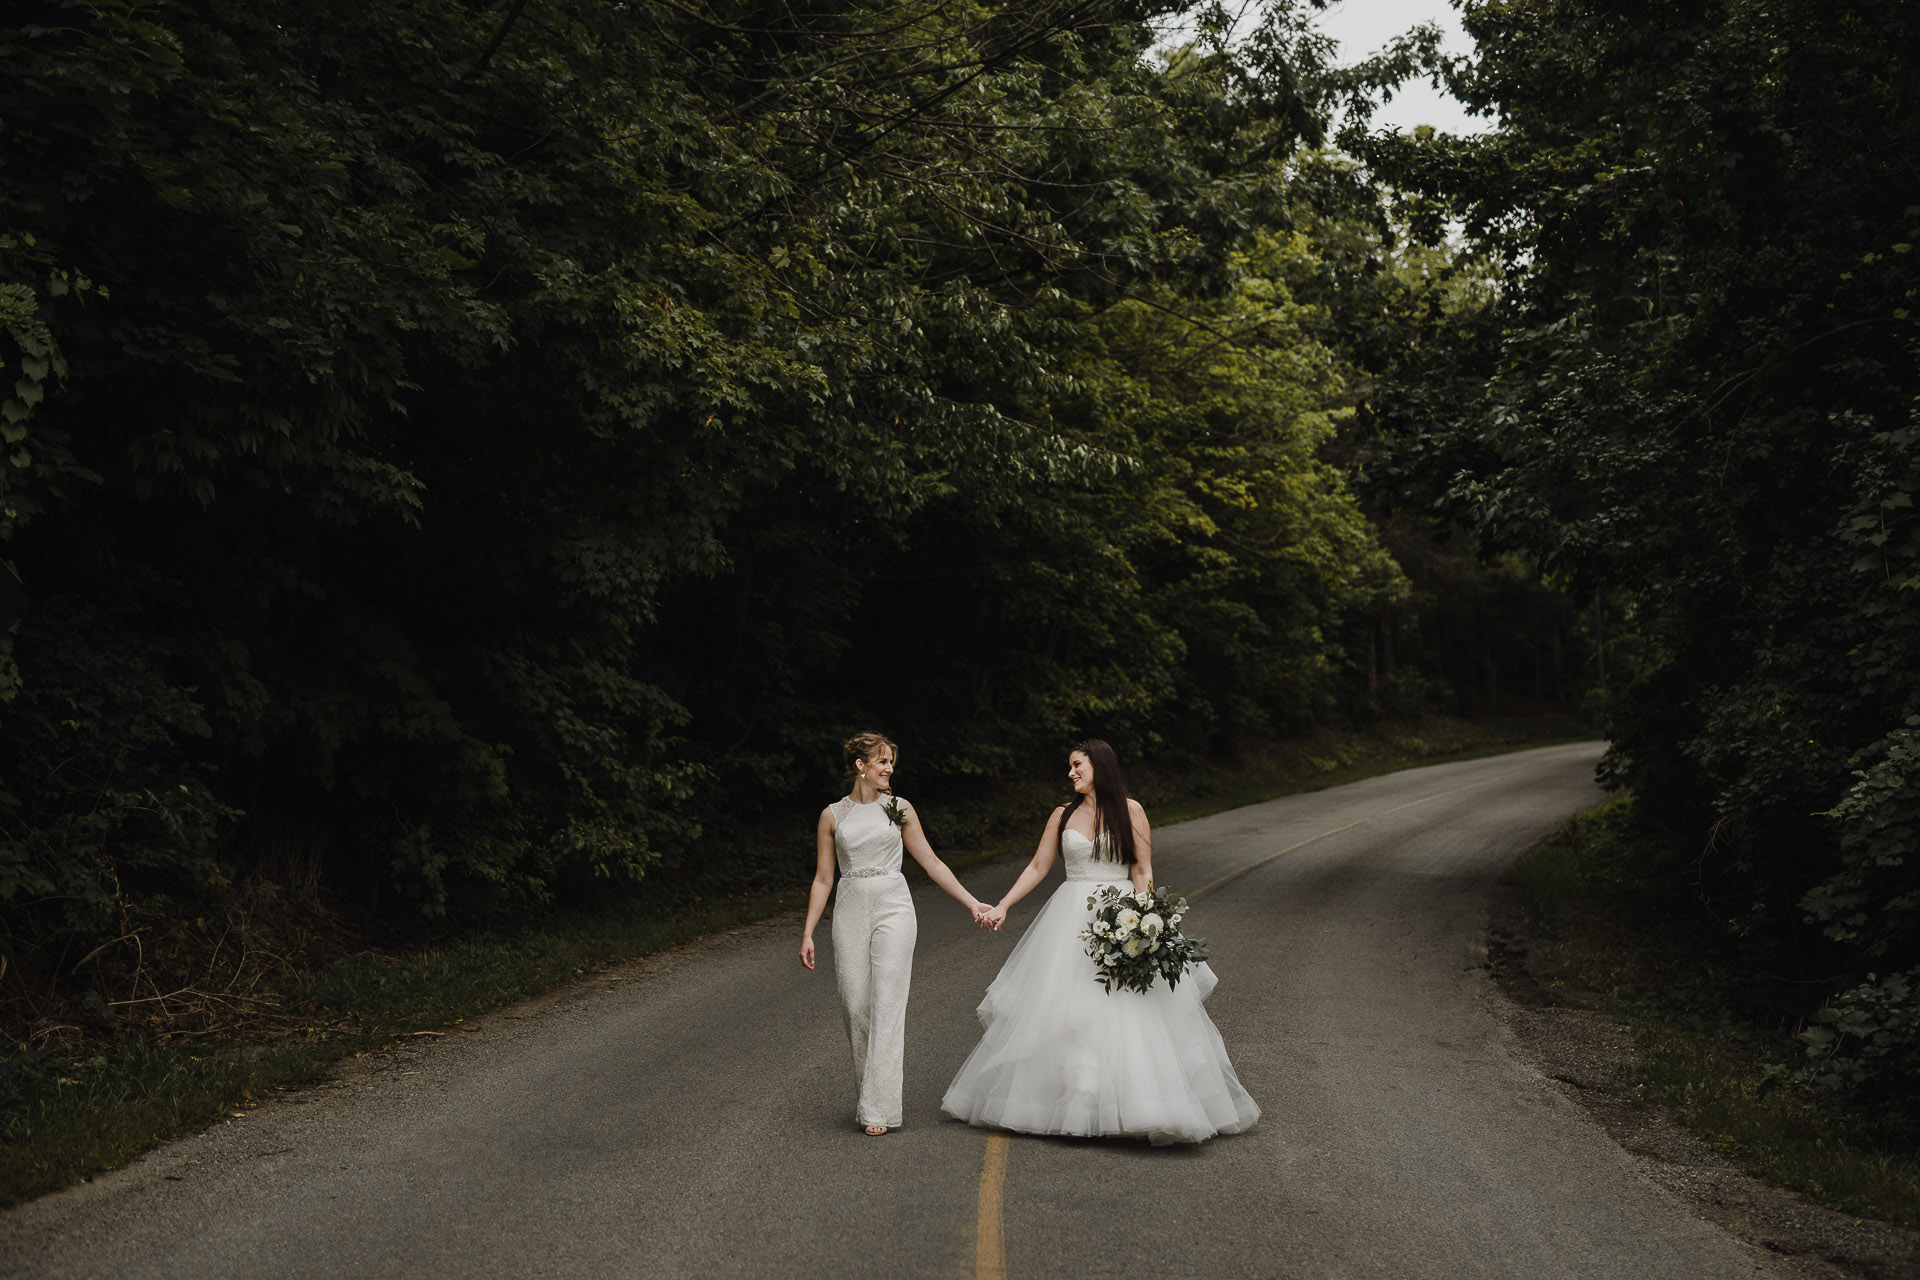 Balls Falls Conservation Area Wedding - holding hands in the road